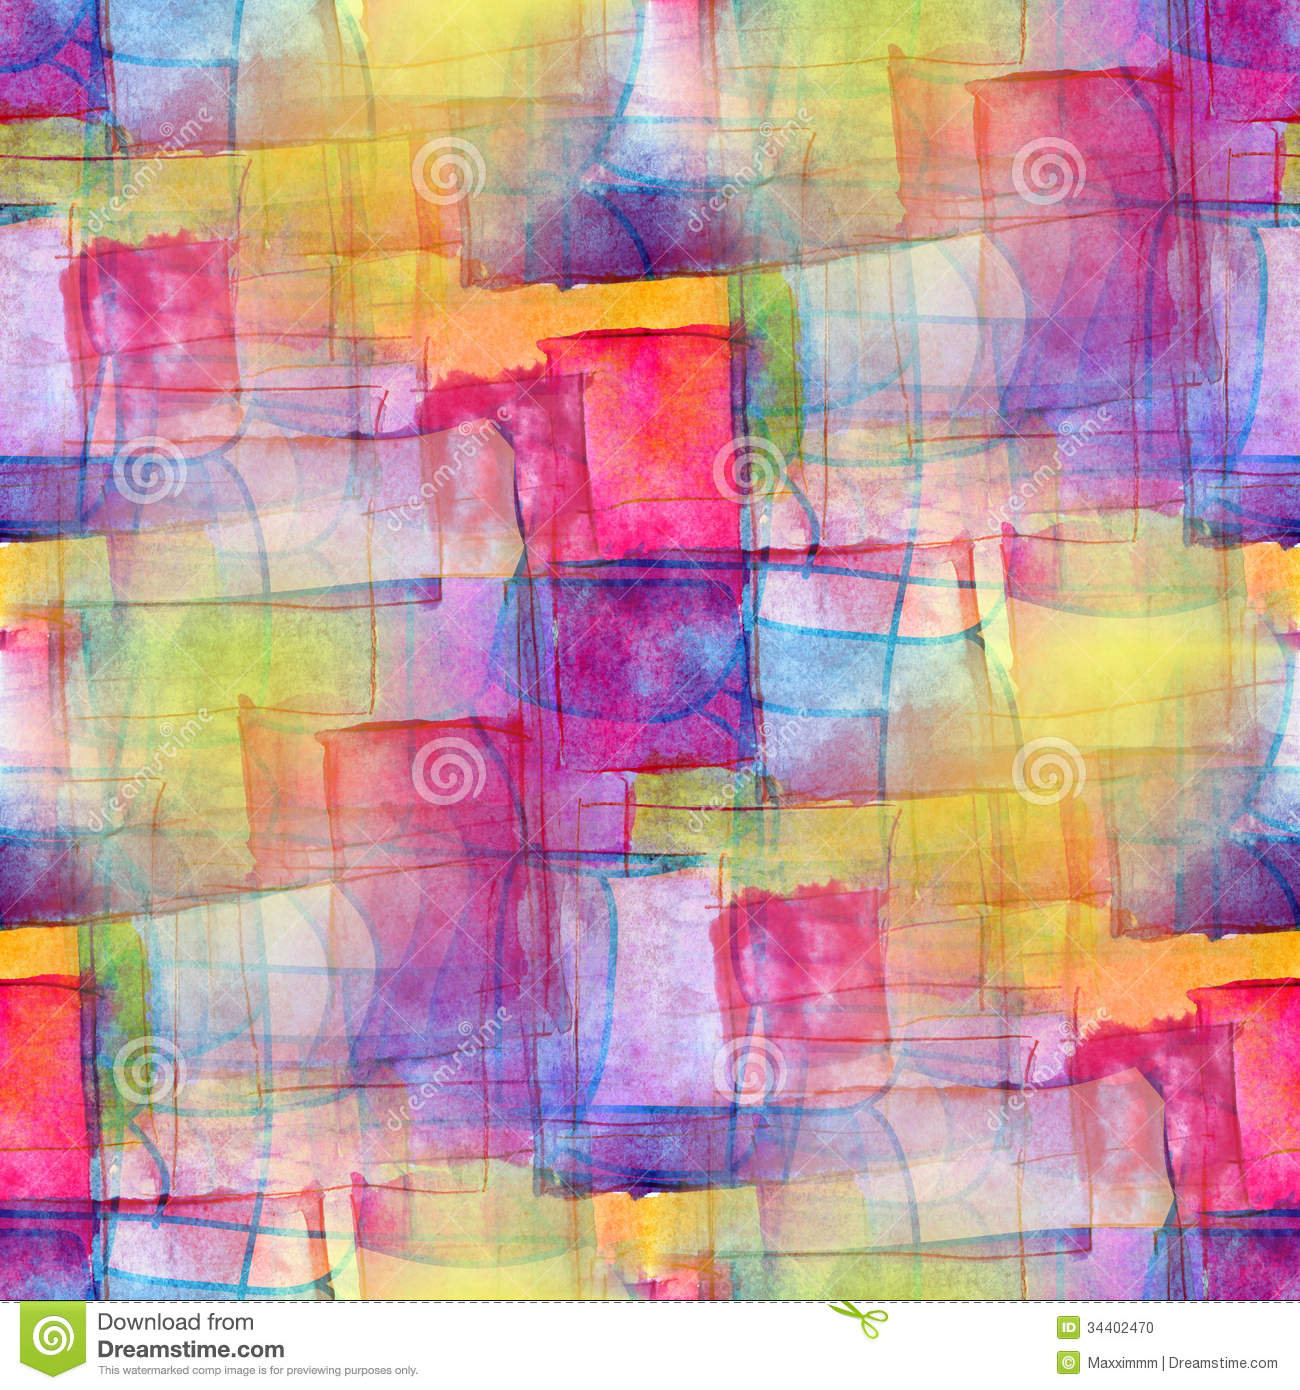 Watercolor Images Abstract cubism abstract watercolor